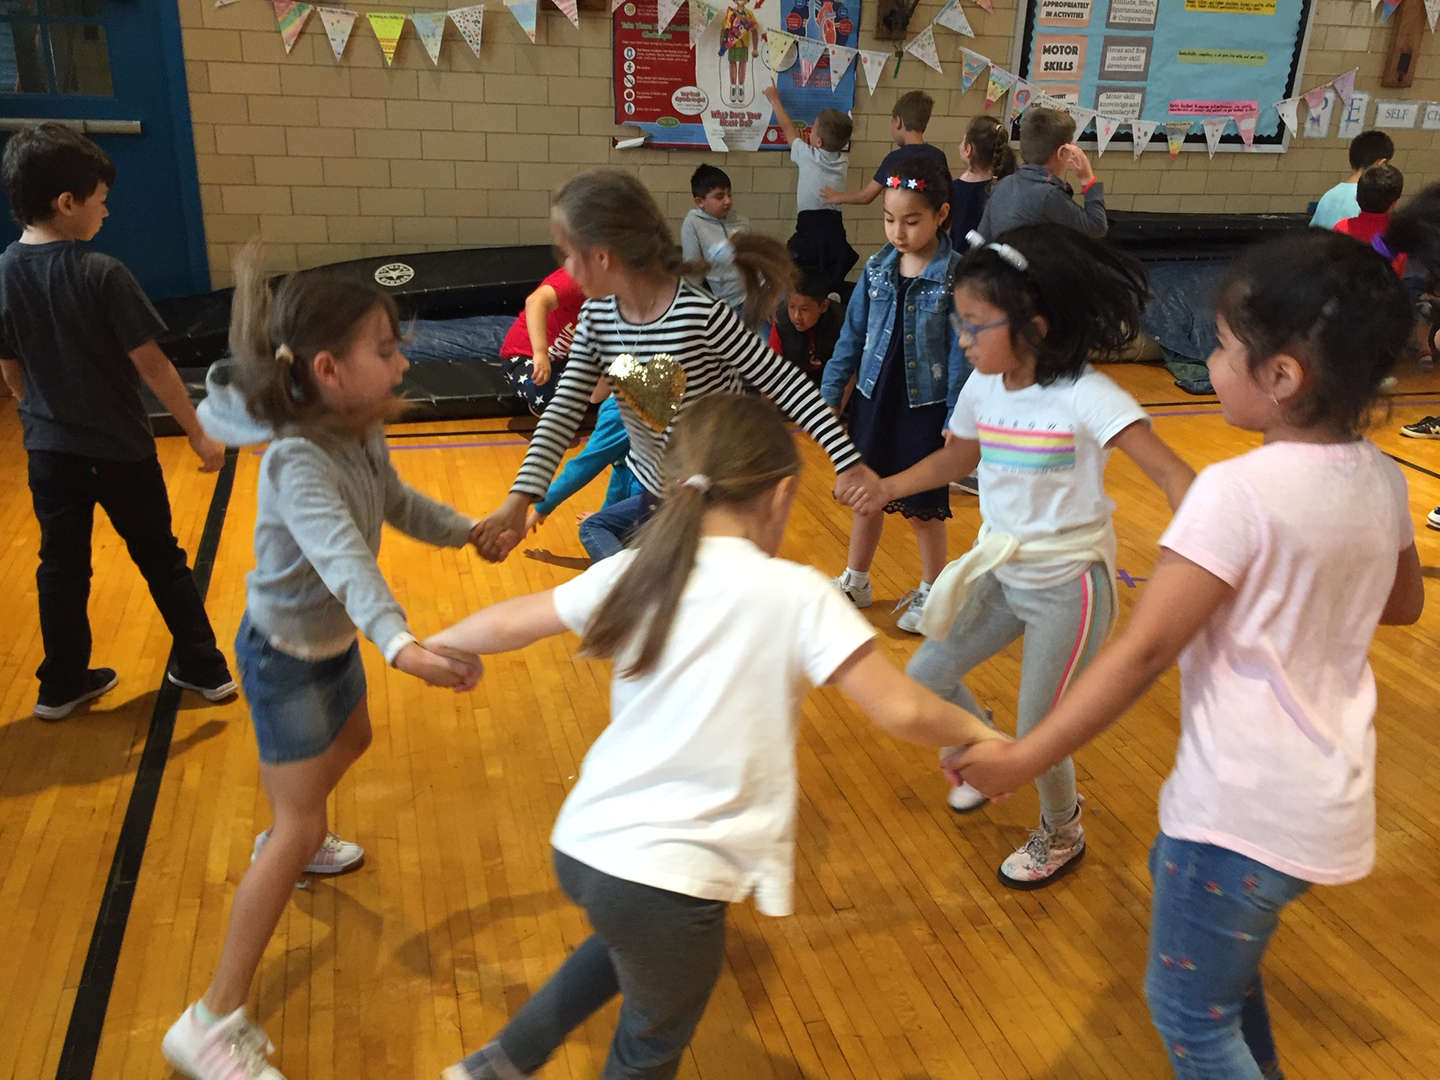 Students form a circle to dance to the music.